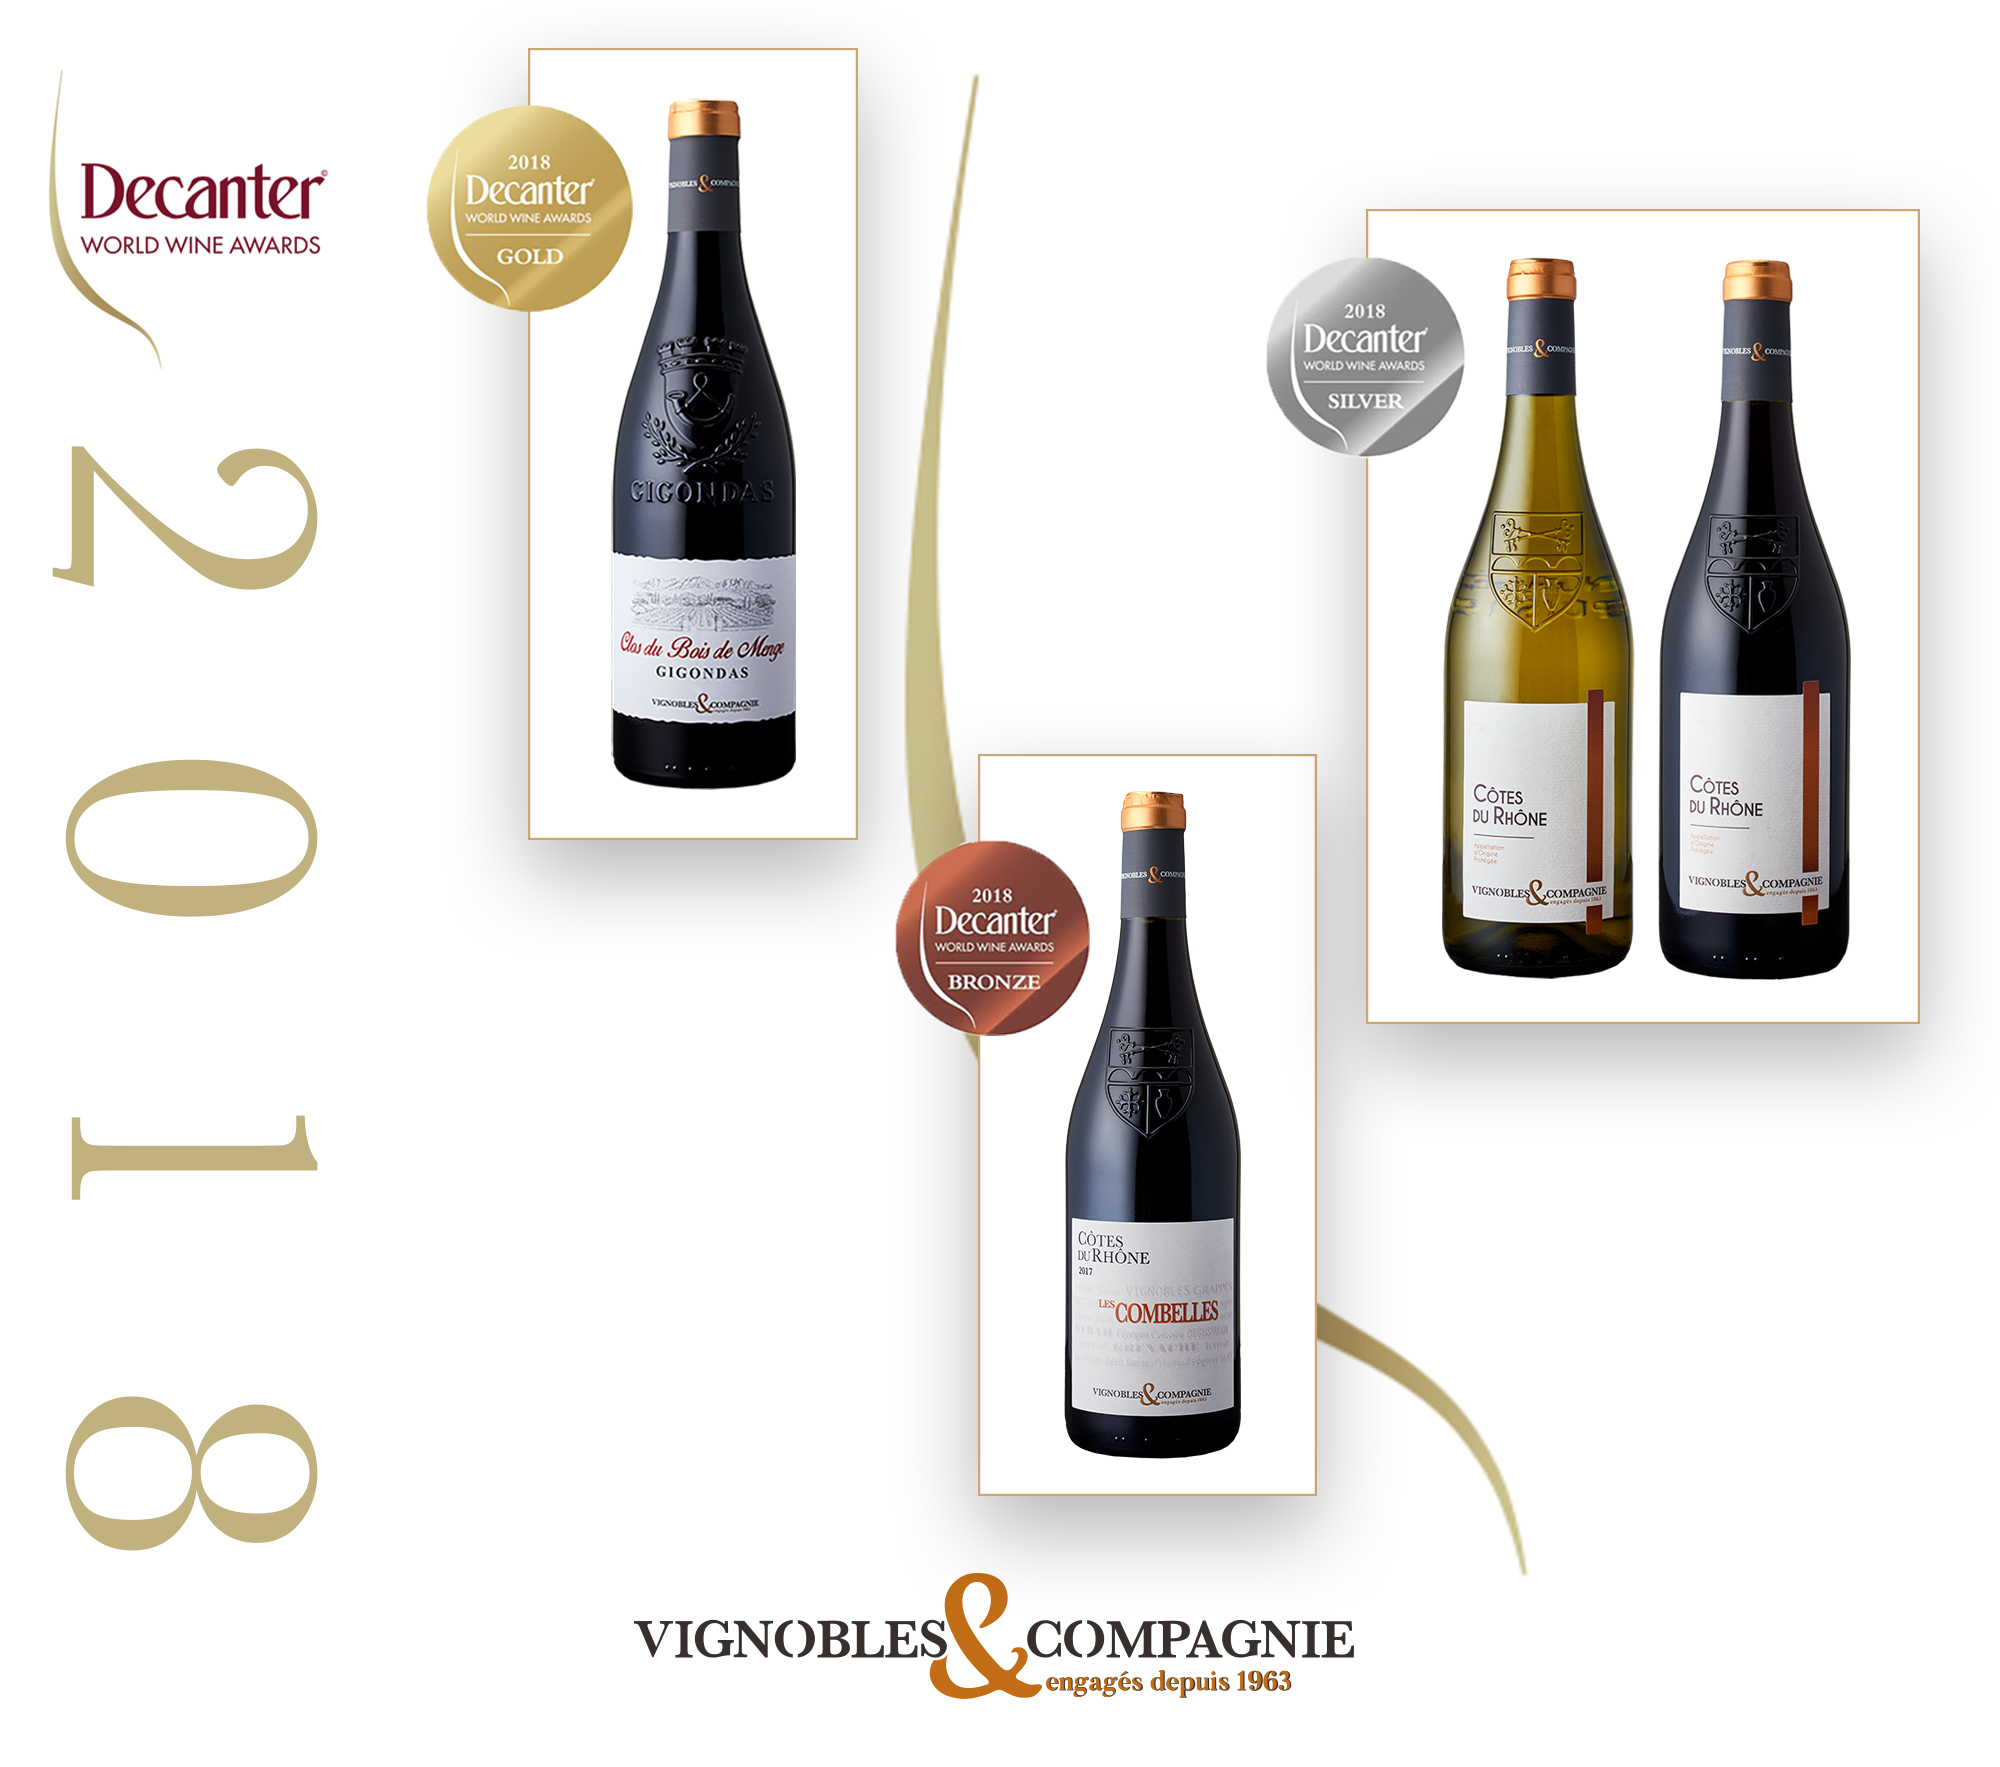 decanter-vignobles-compagnie